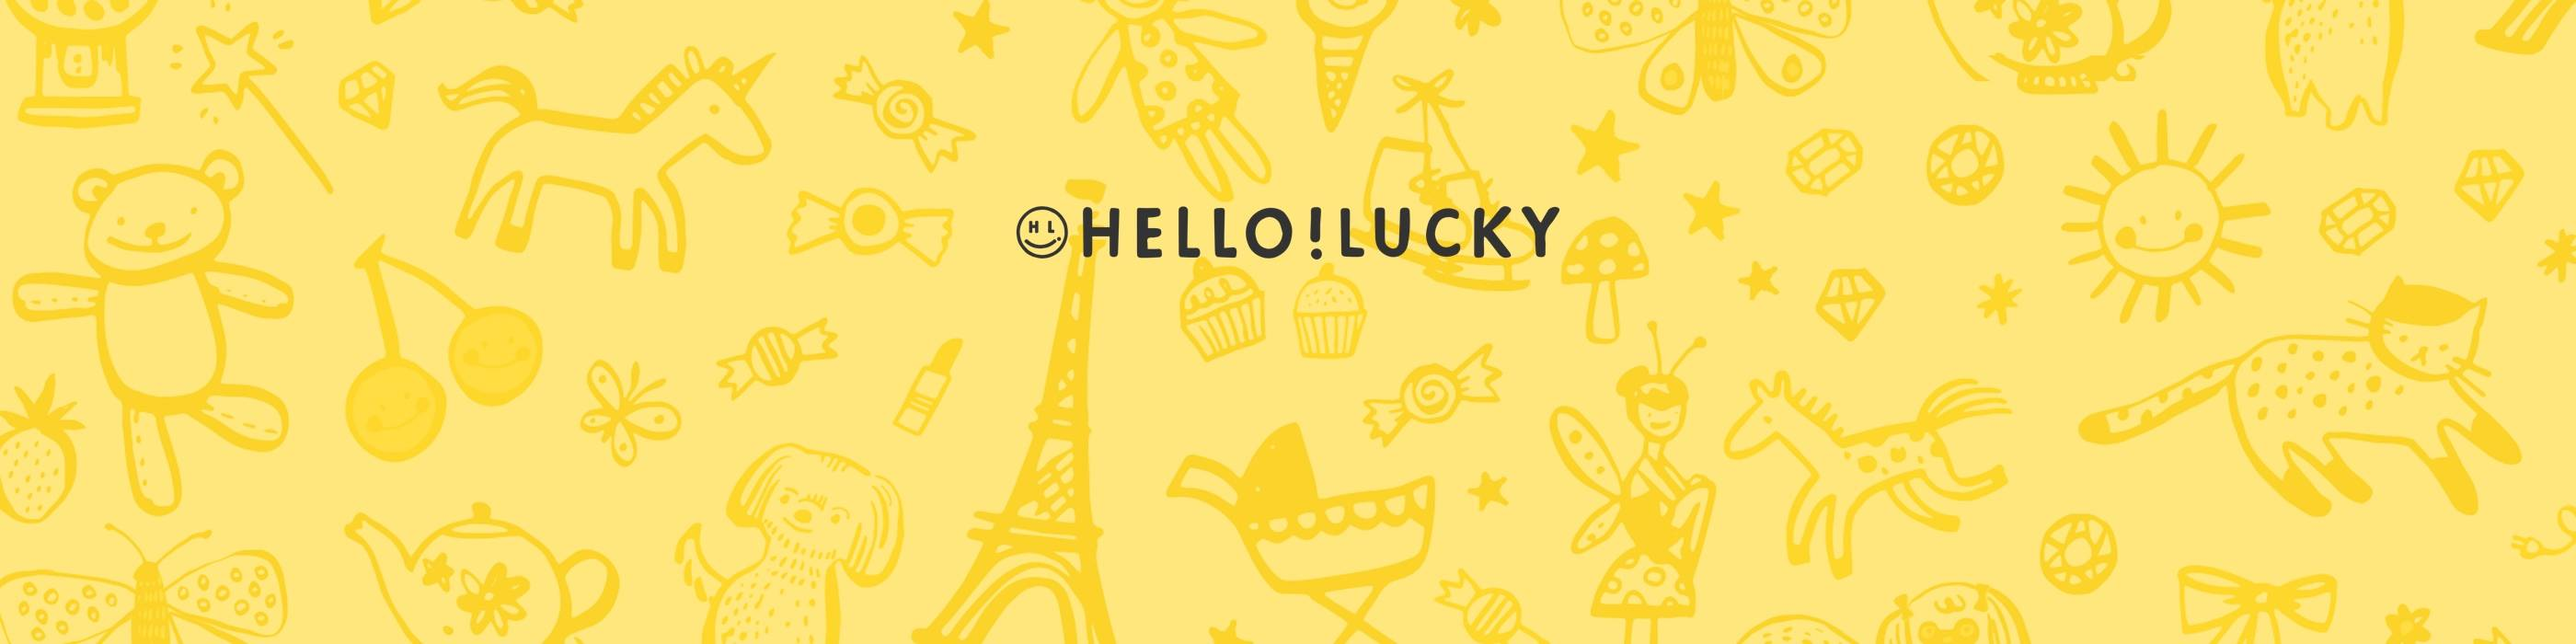 Hello!Lucky for Paperless Post